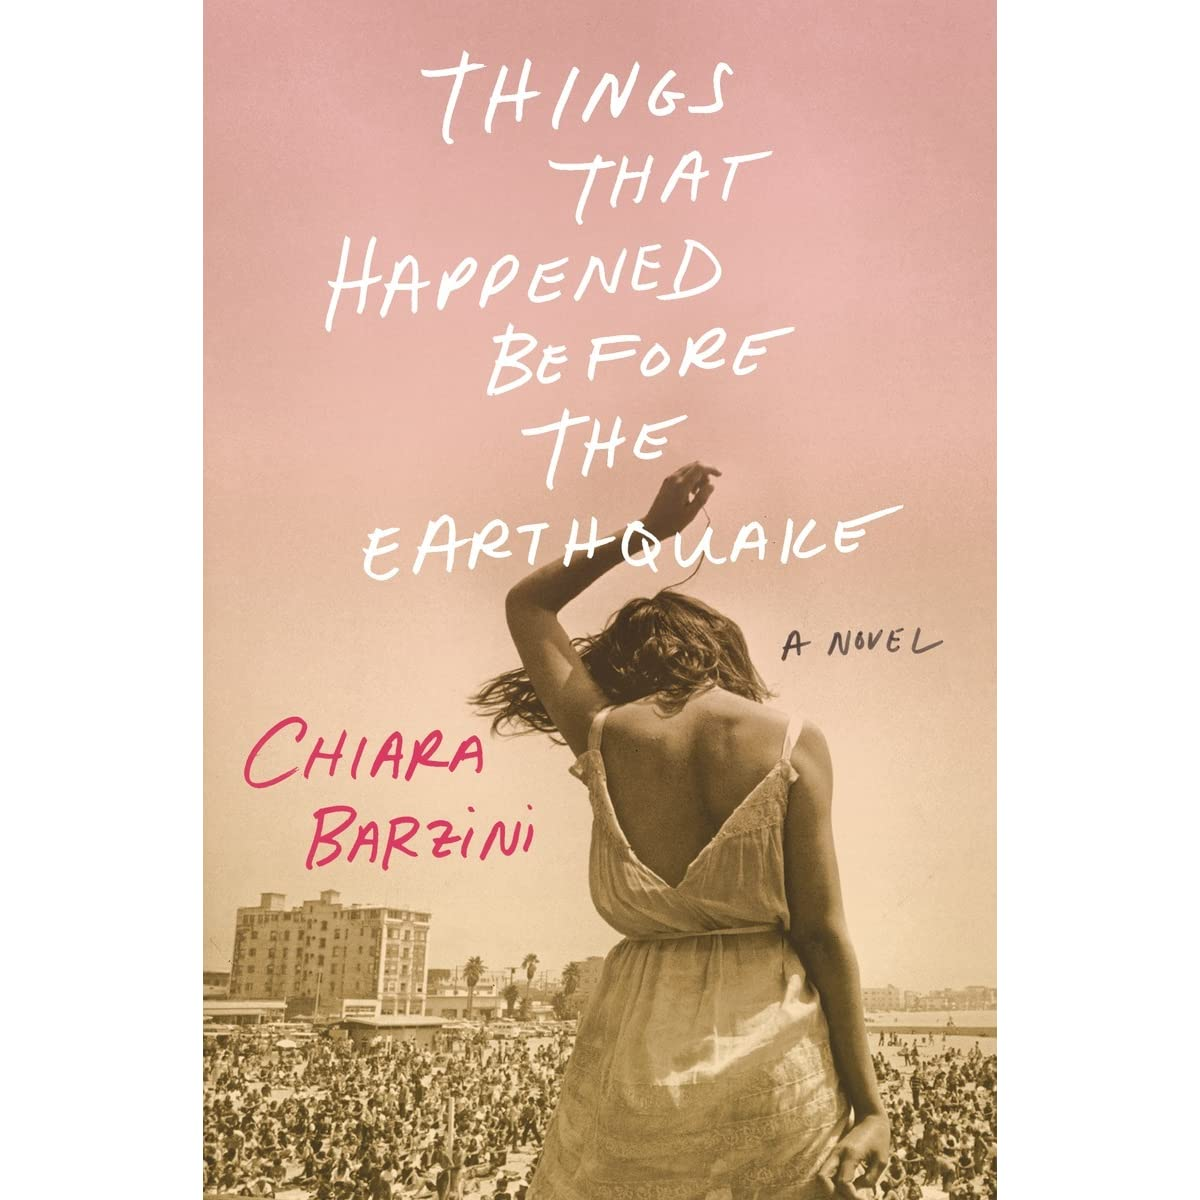 Things that happened before the earthquake by chiara barzini fandeluxe Image collections